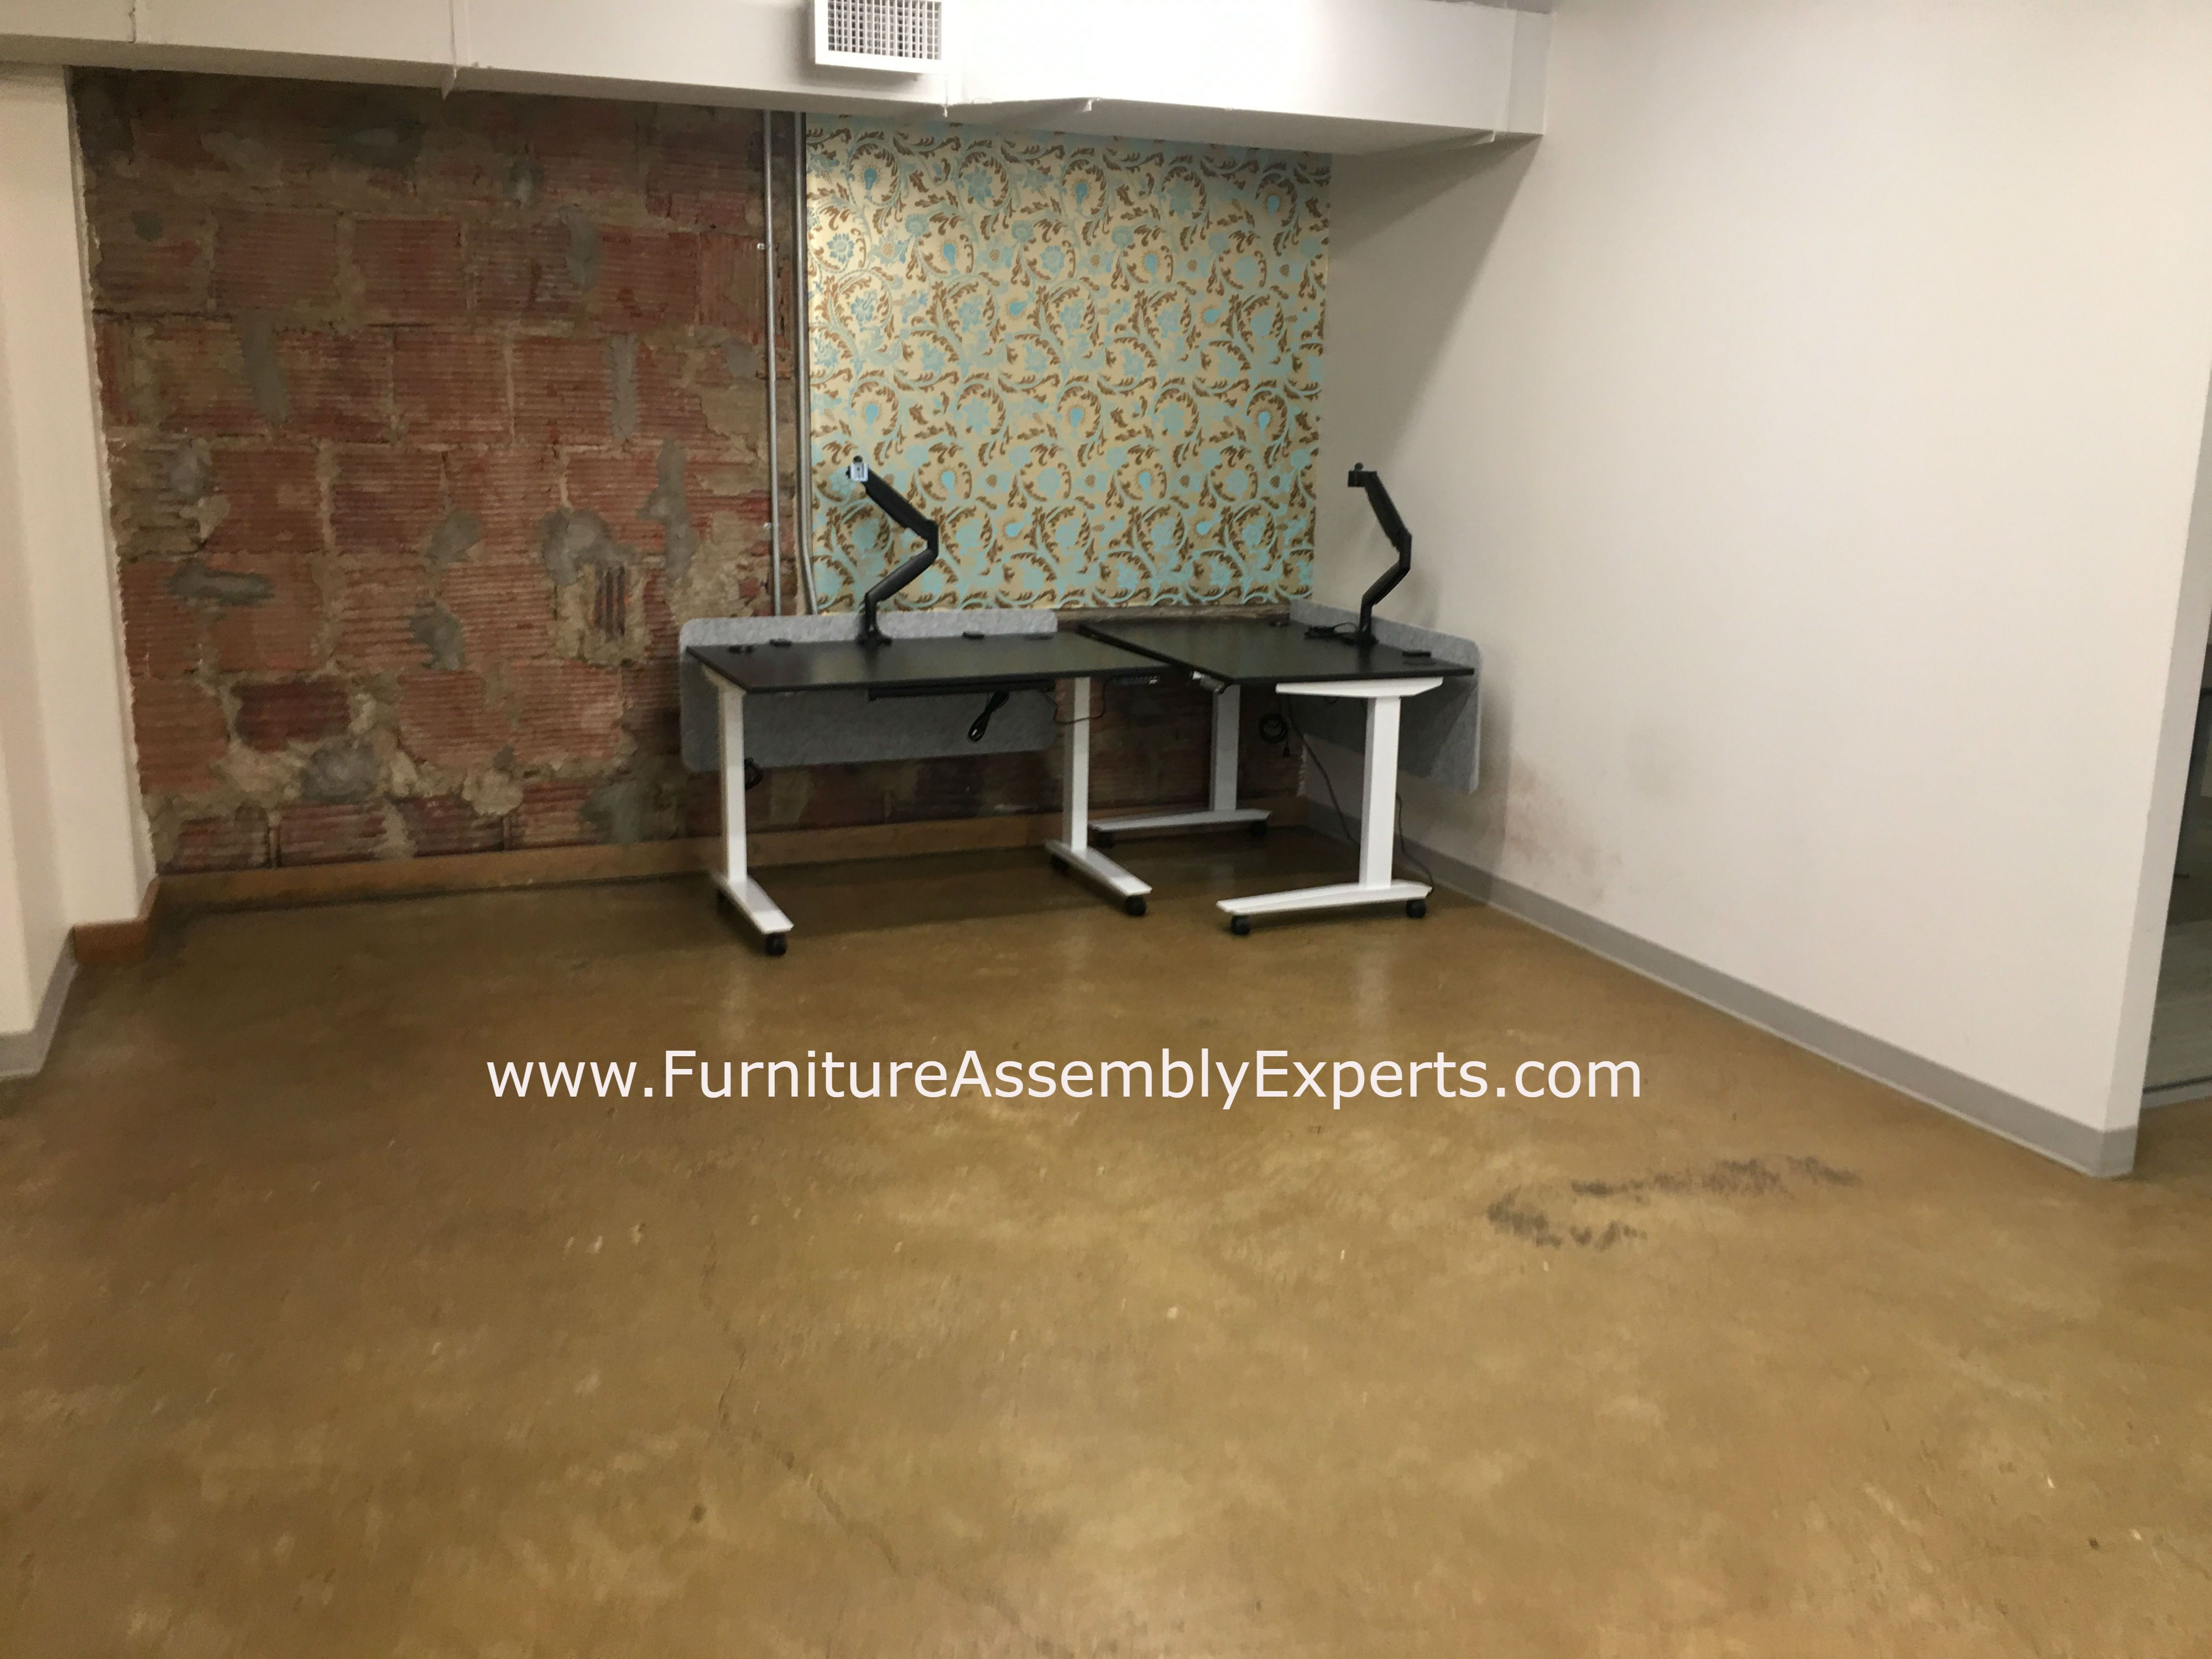 Pin on Furniture Assembly Experts - DC MD VA Office ...